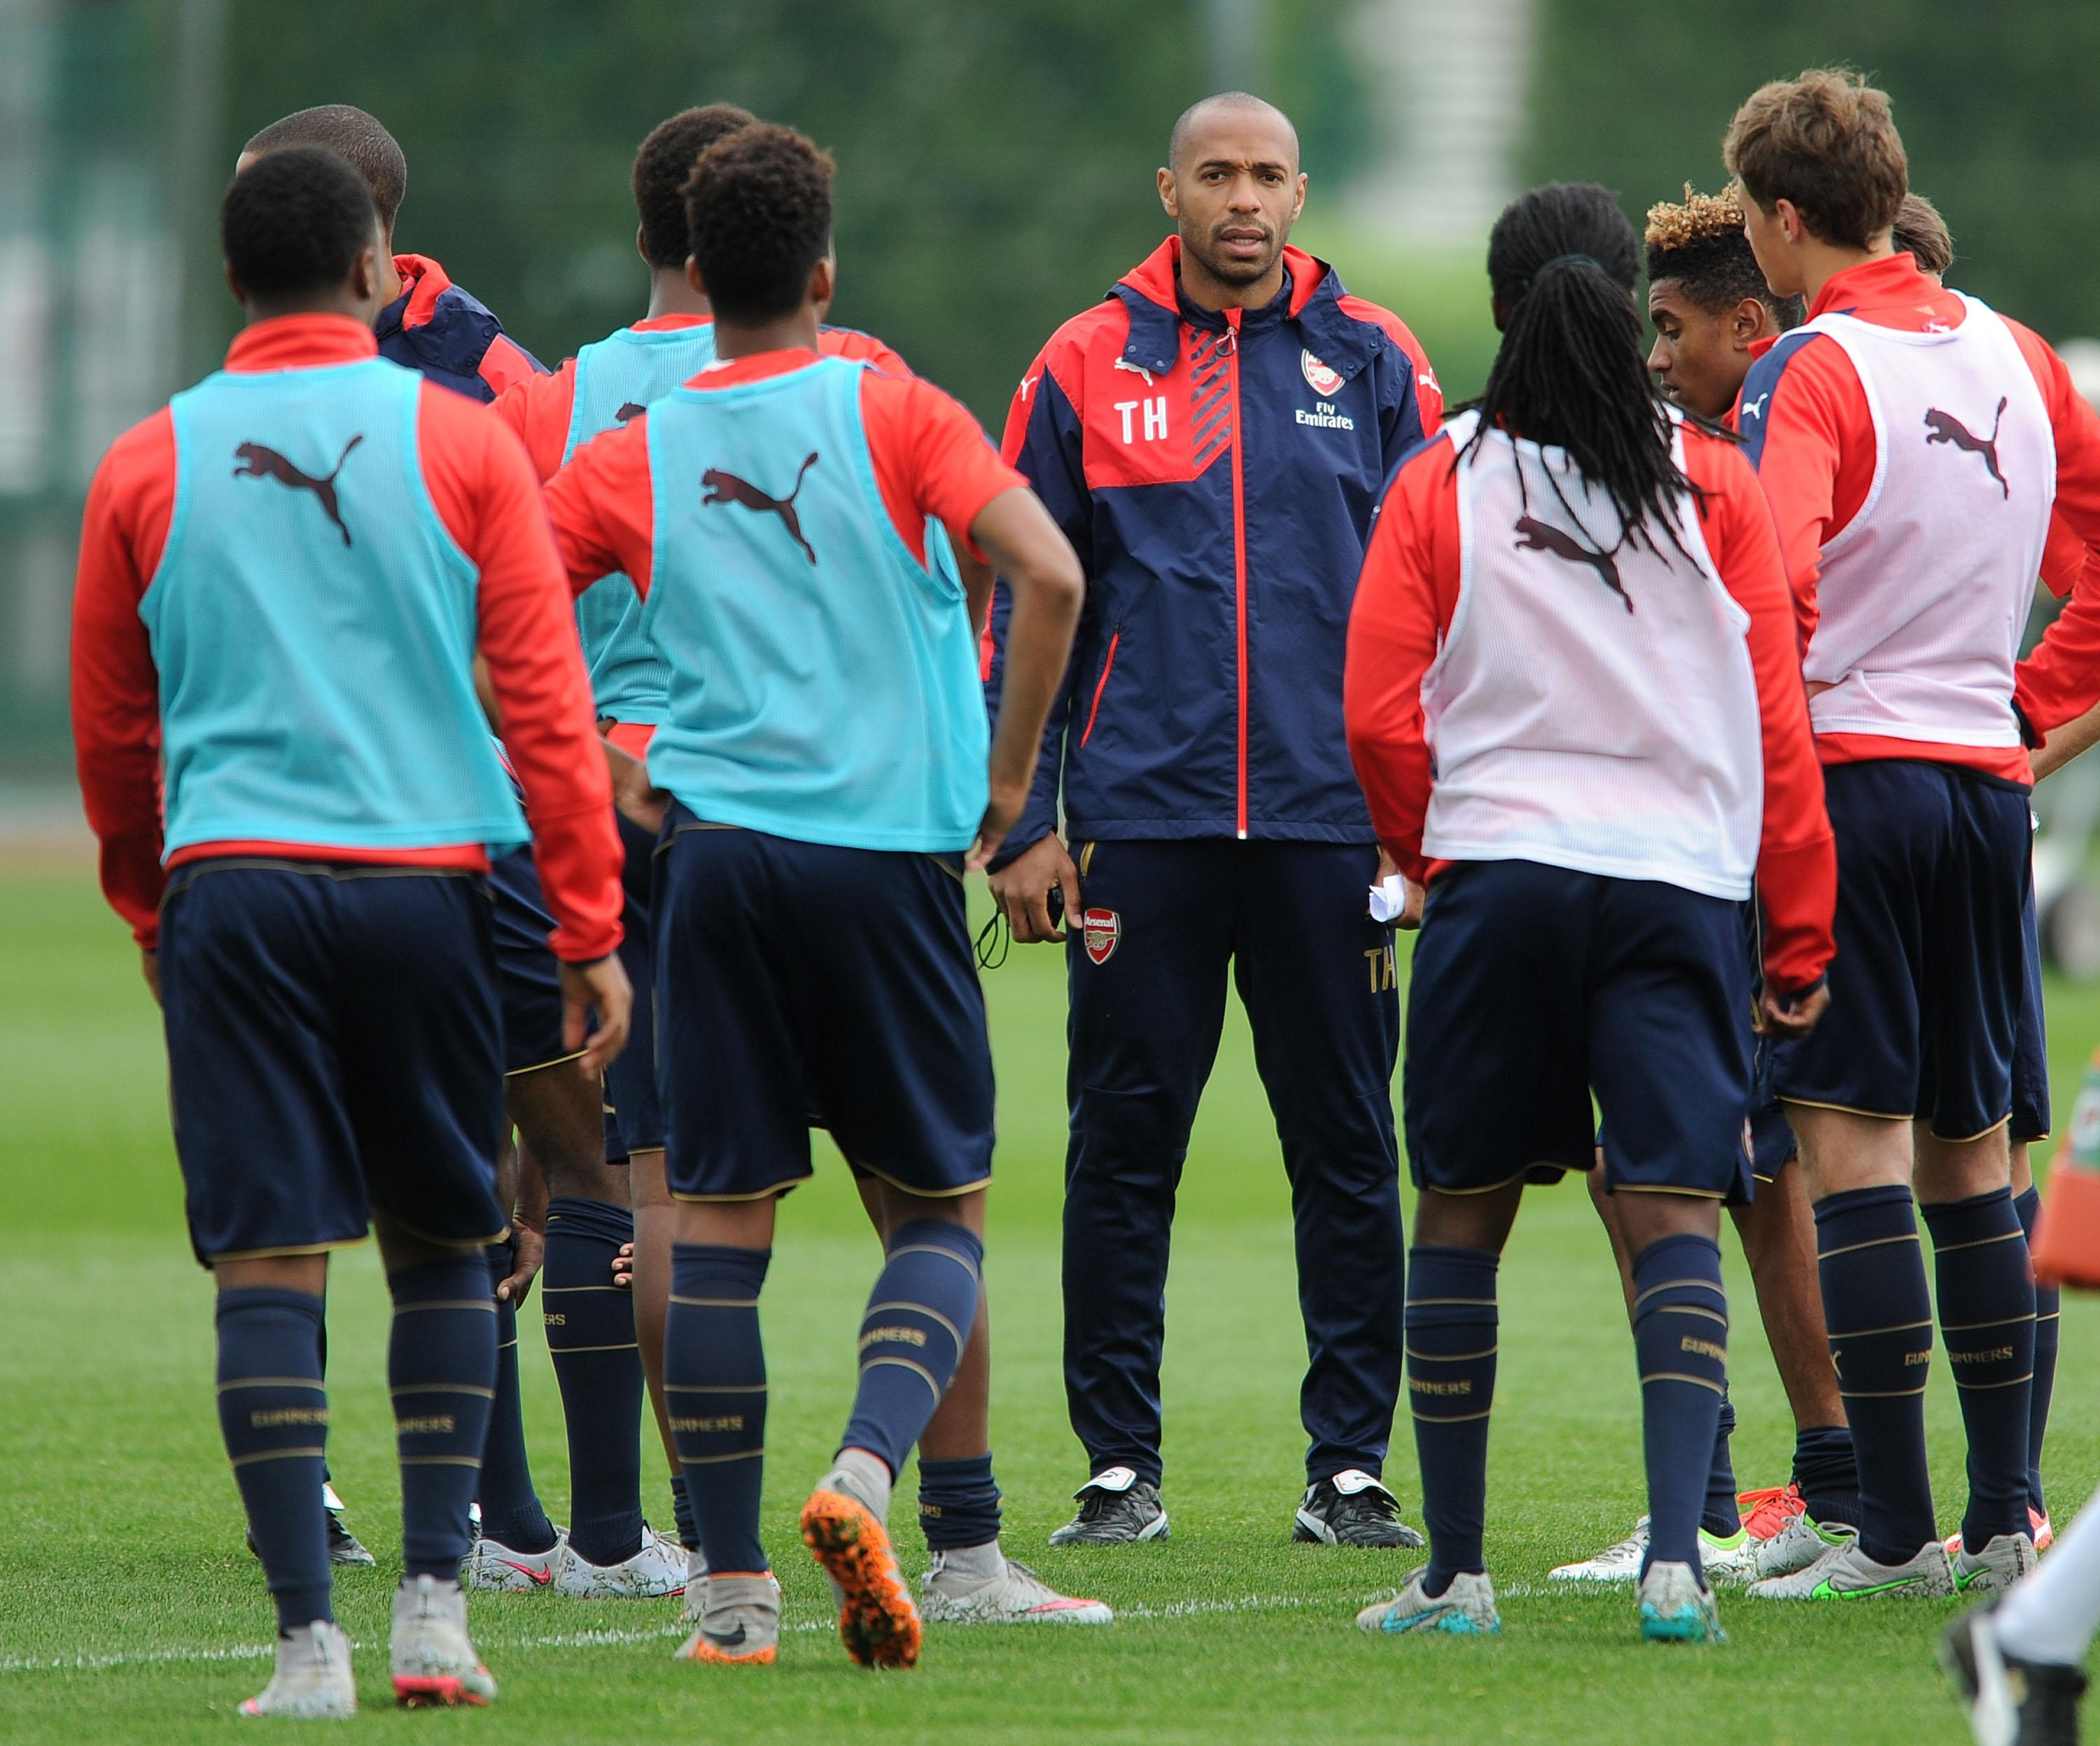 Arsenal's youngsters were learning from the World Cup winner